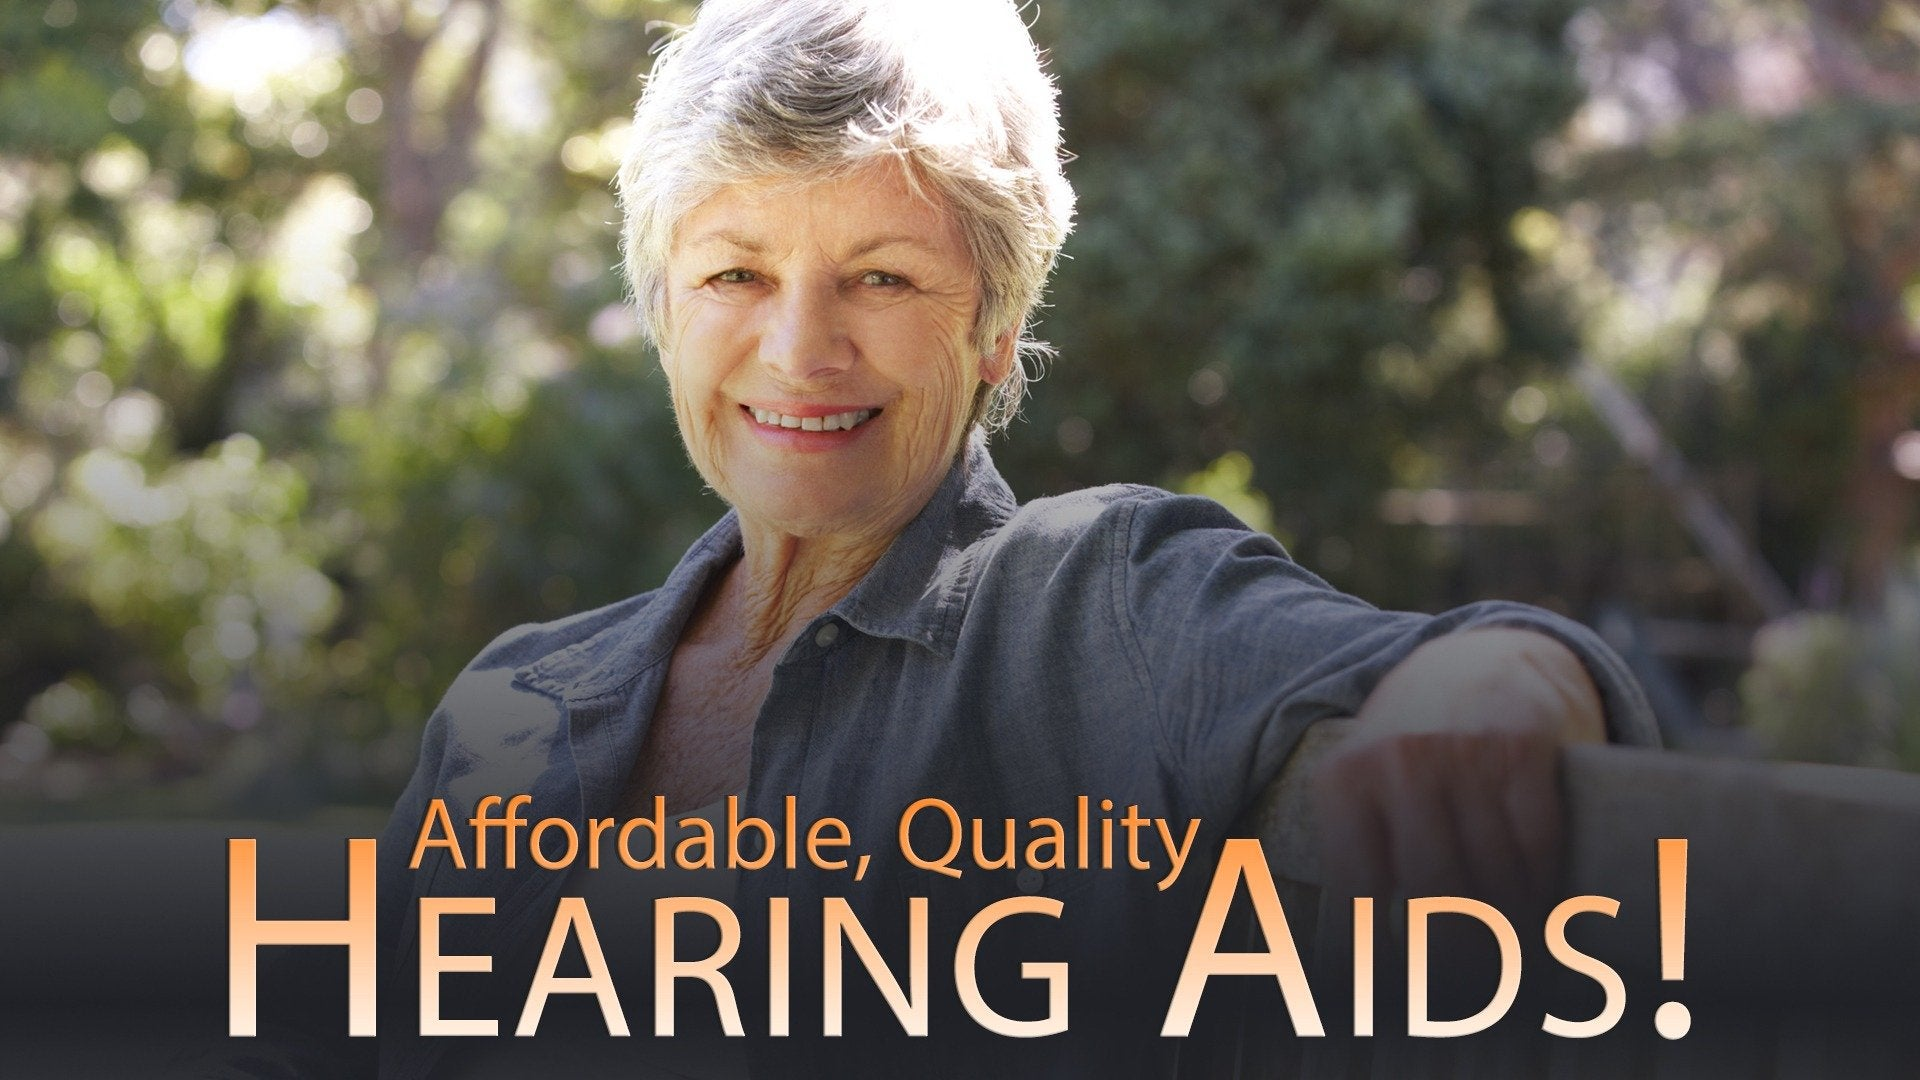 Affordable, Quality Hearing Aids!